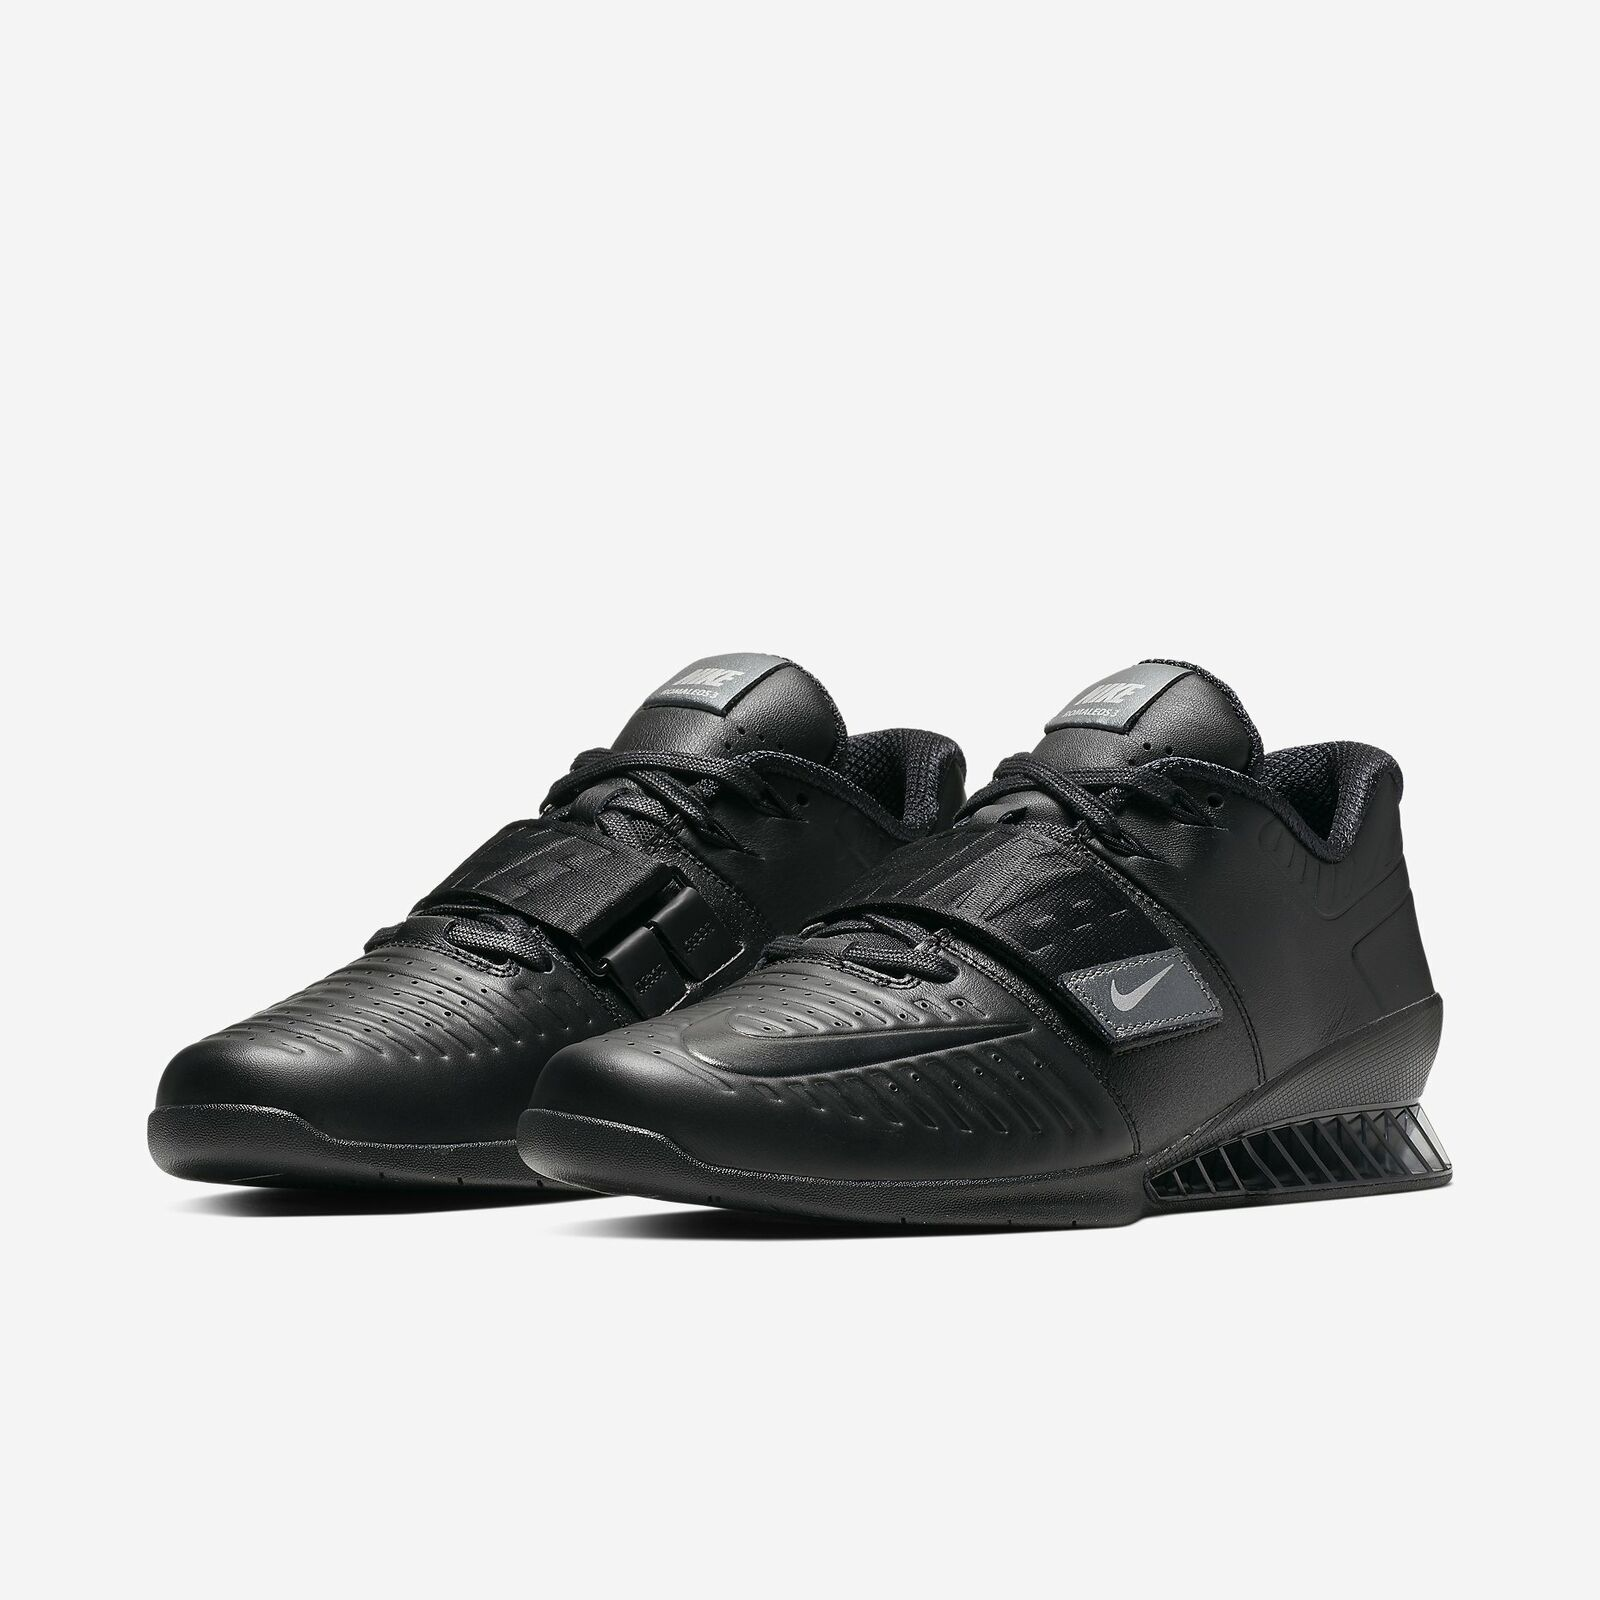 Nike Romaleos 3 XD 3.5 Triple Black Lifting Powerlifting Workout 2019 All New